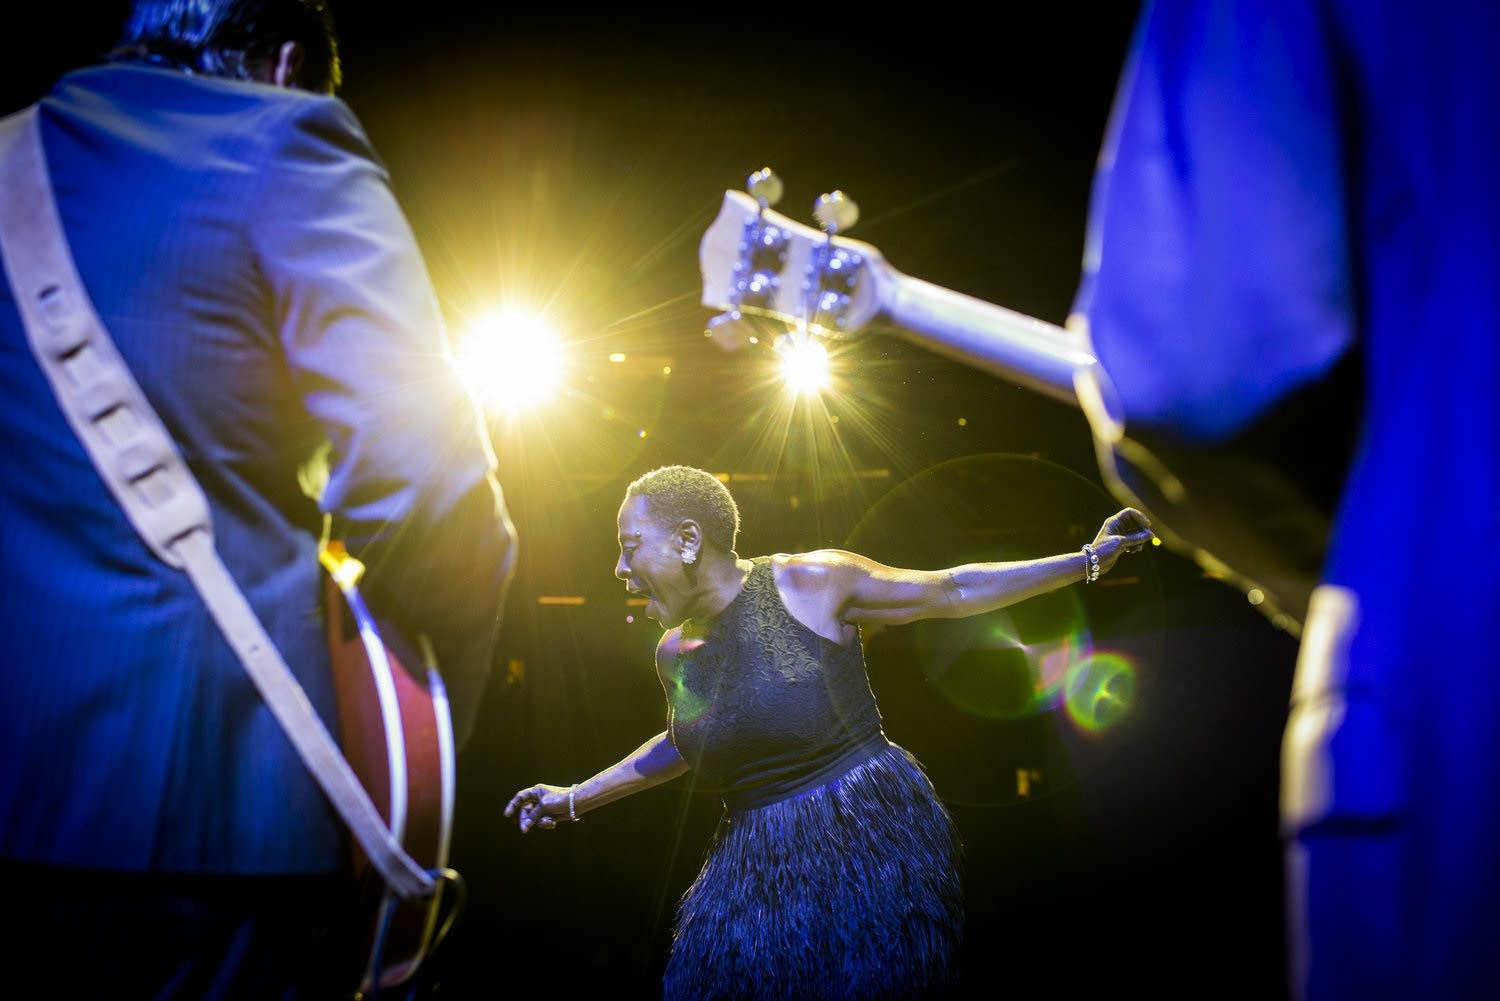 Sharon Jones photos by Jacob Blickenstaff